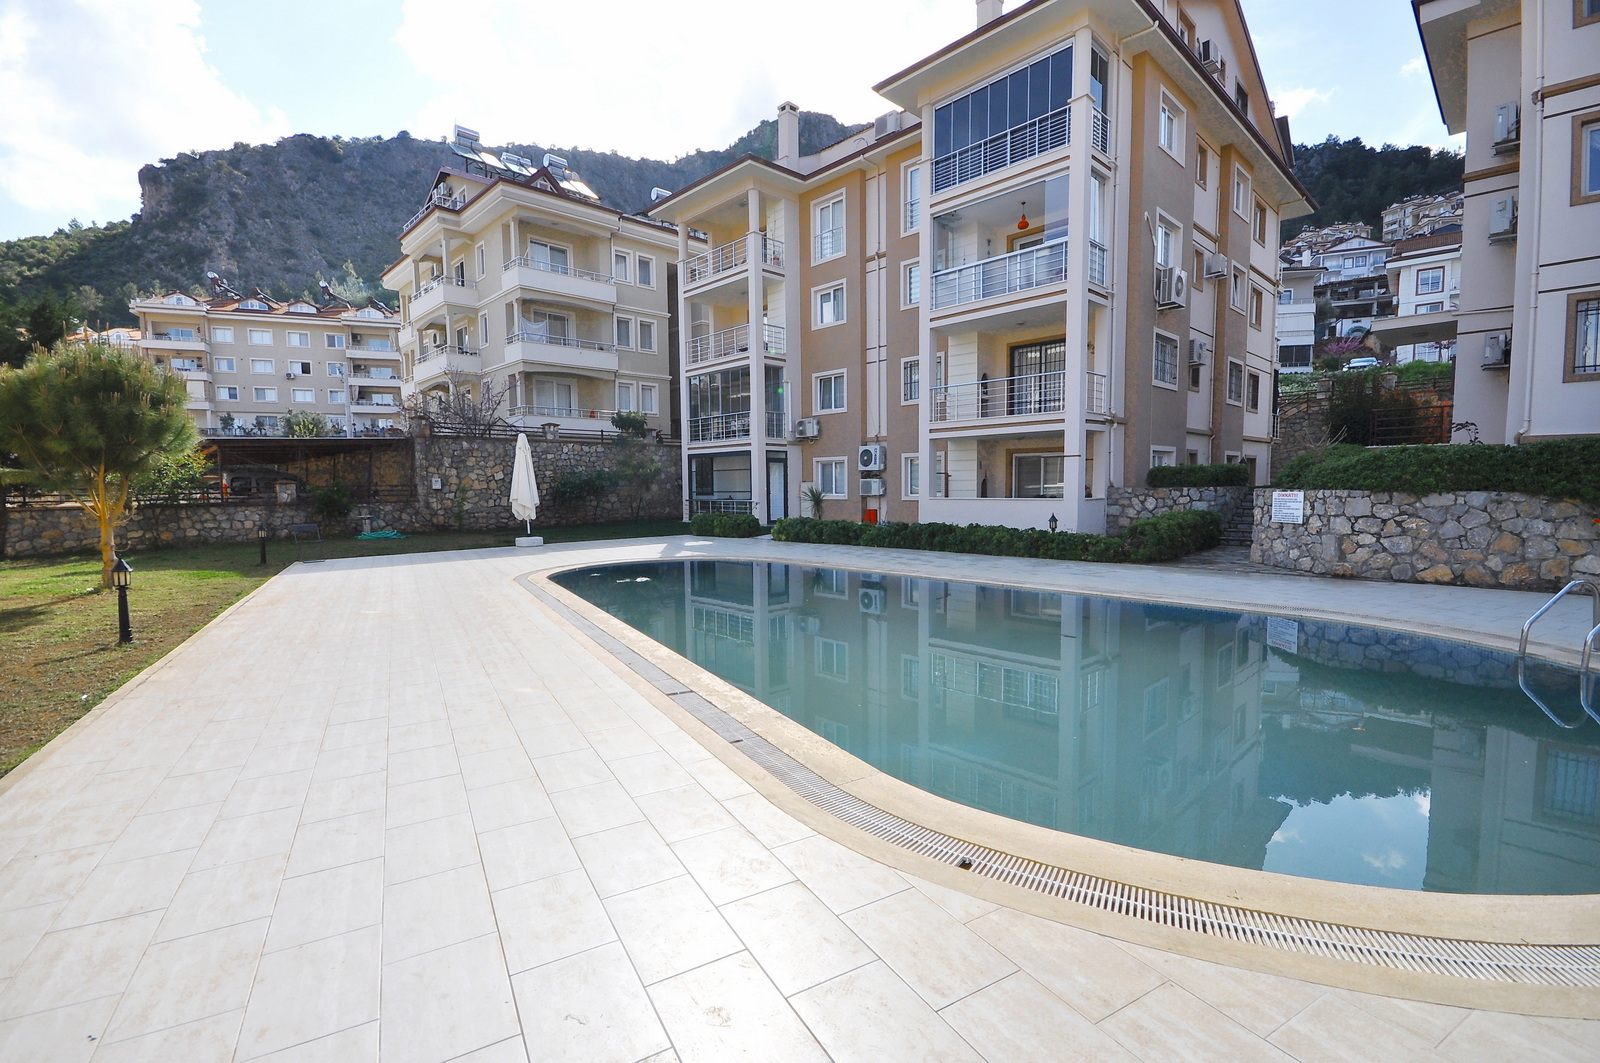 3 Bedroom Fethiye Apartment with Communal Swimming Pool